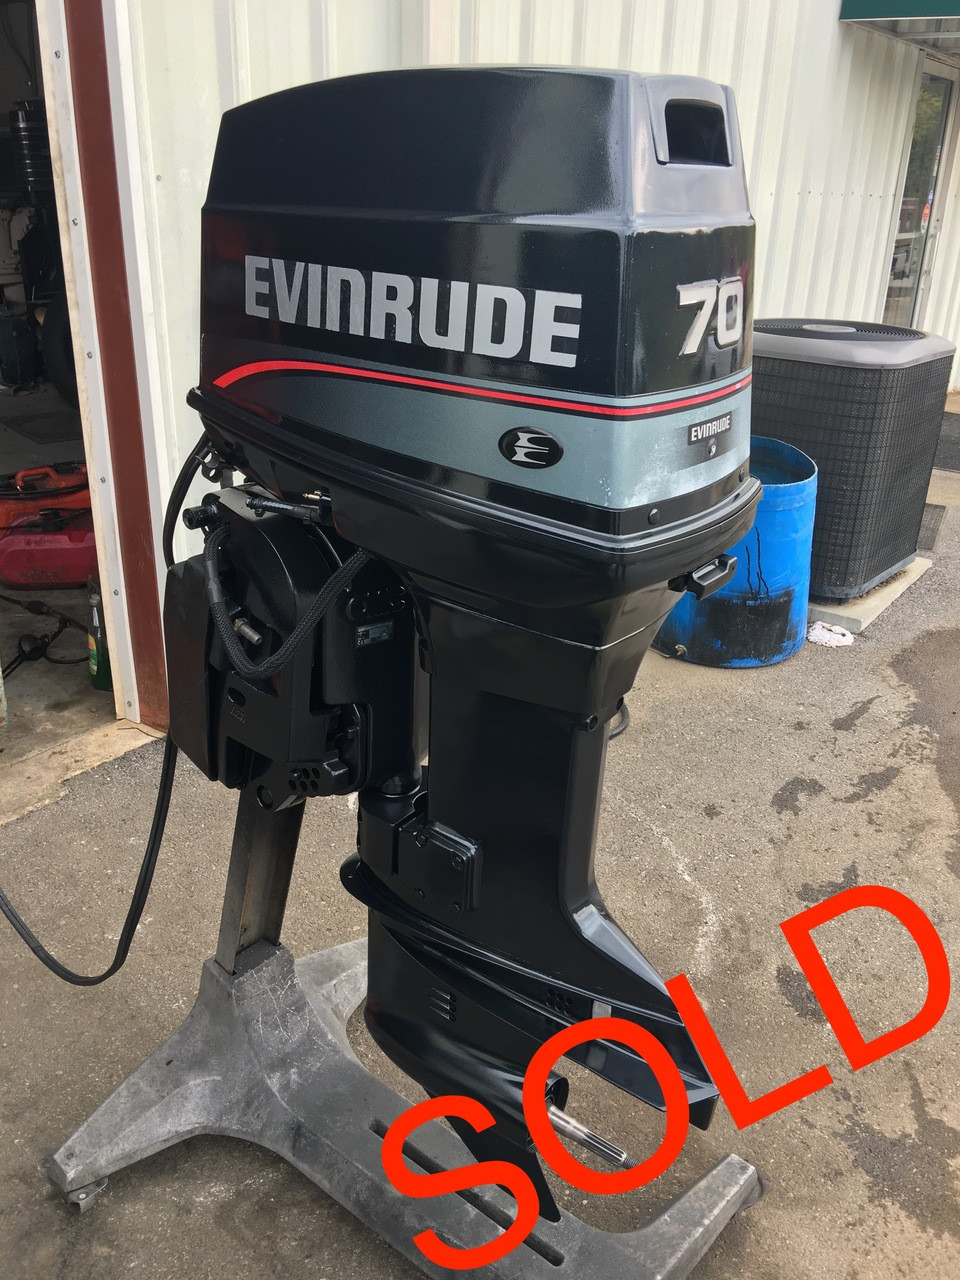 1996 Evinrude 70 Hp 3 Cylinder 2 Stroke 20 Quot Outboard Motor